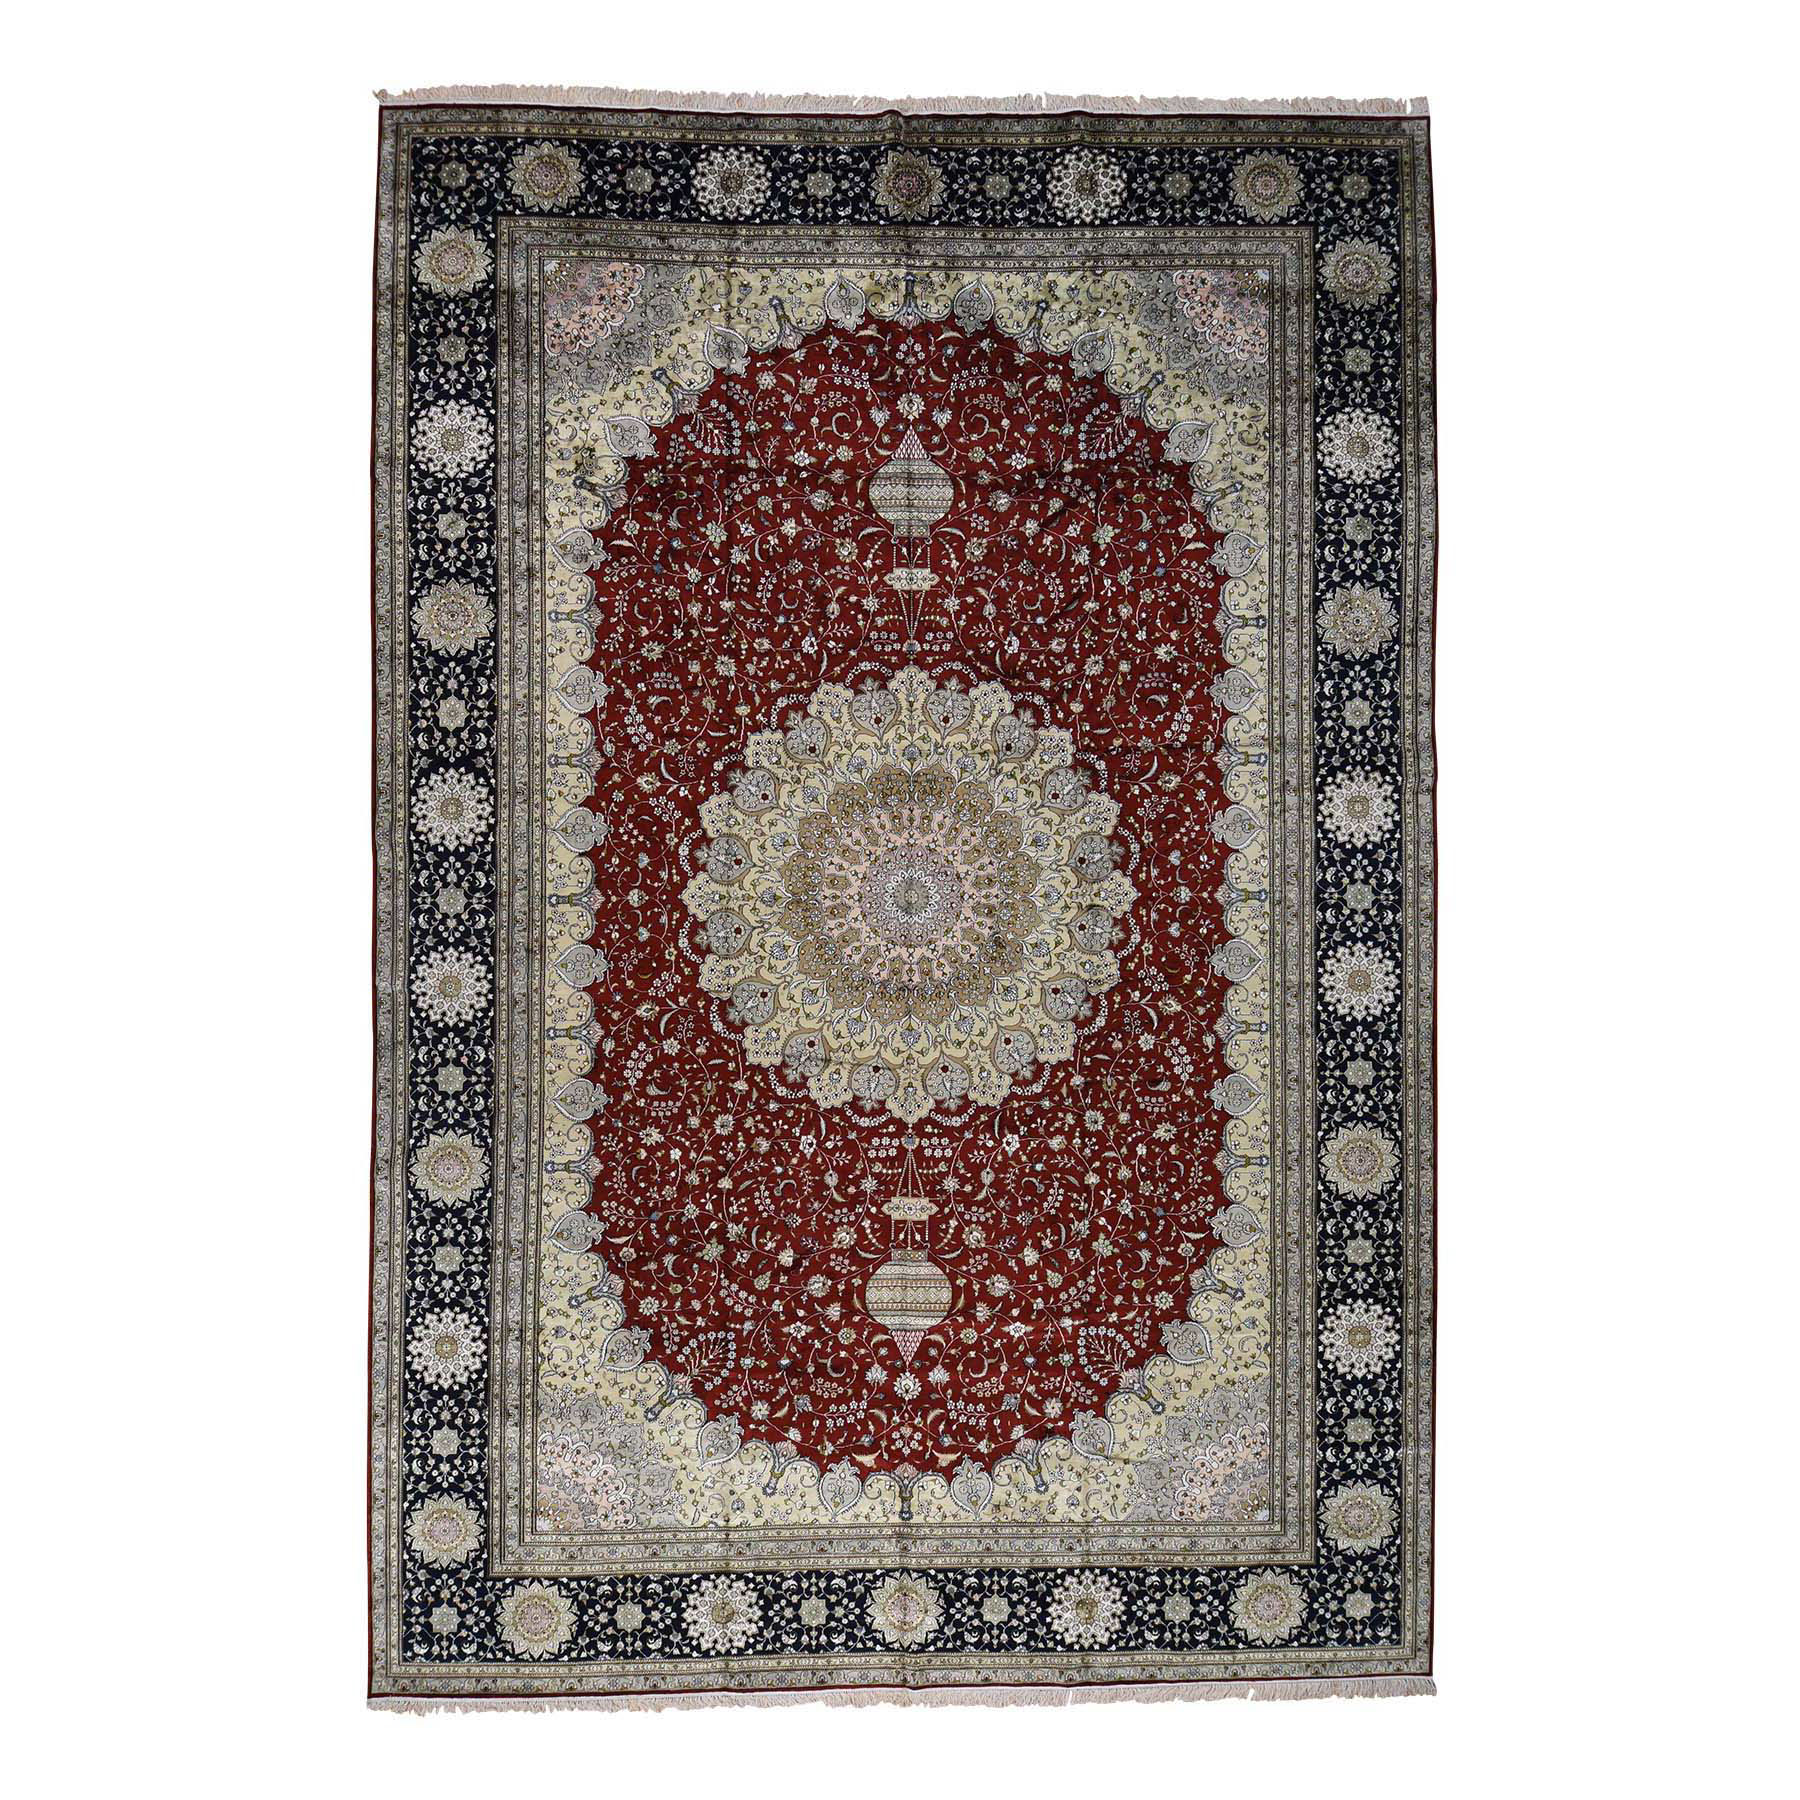 12'X18' Silken Kashan 250 Kpsi Oversize Hand-Knotted Oriental Rug moac699c